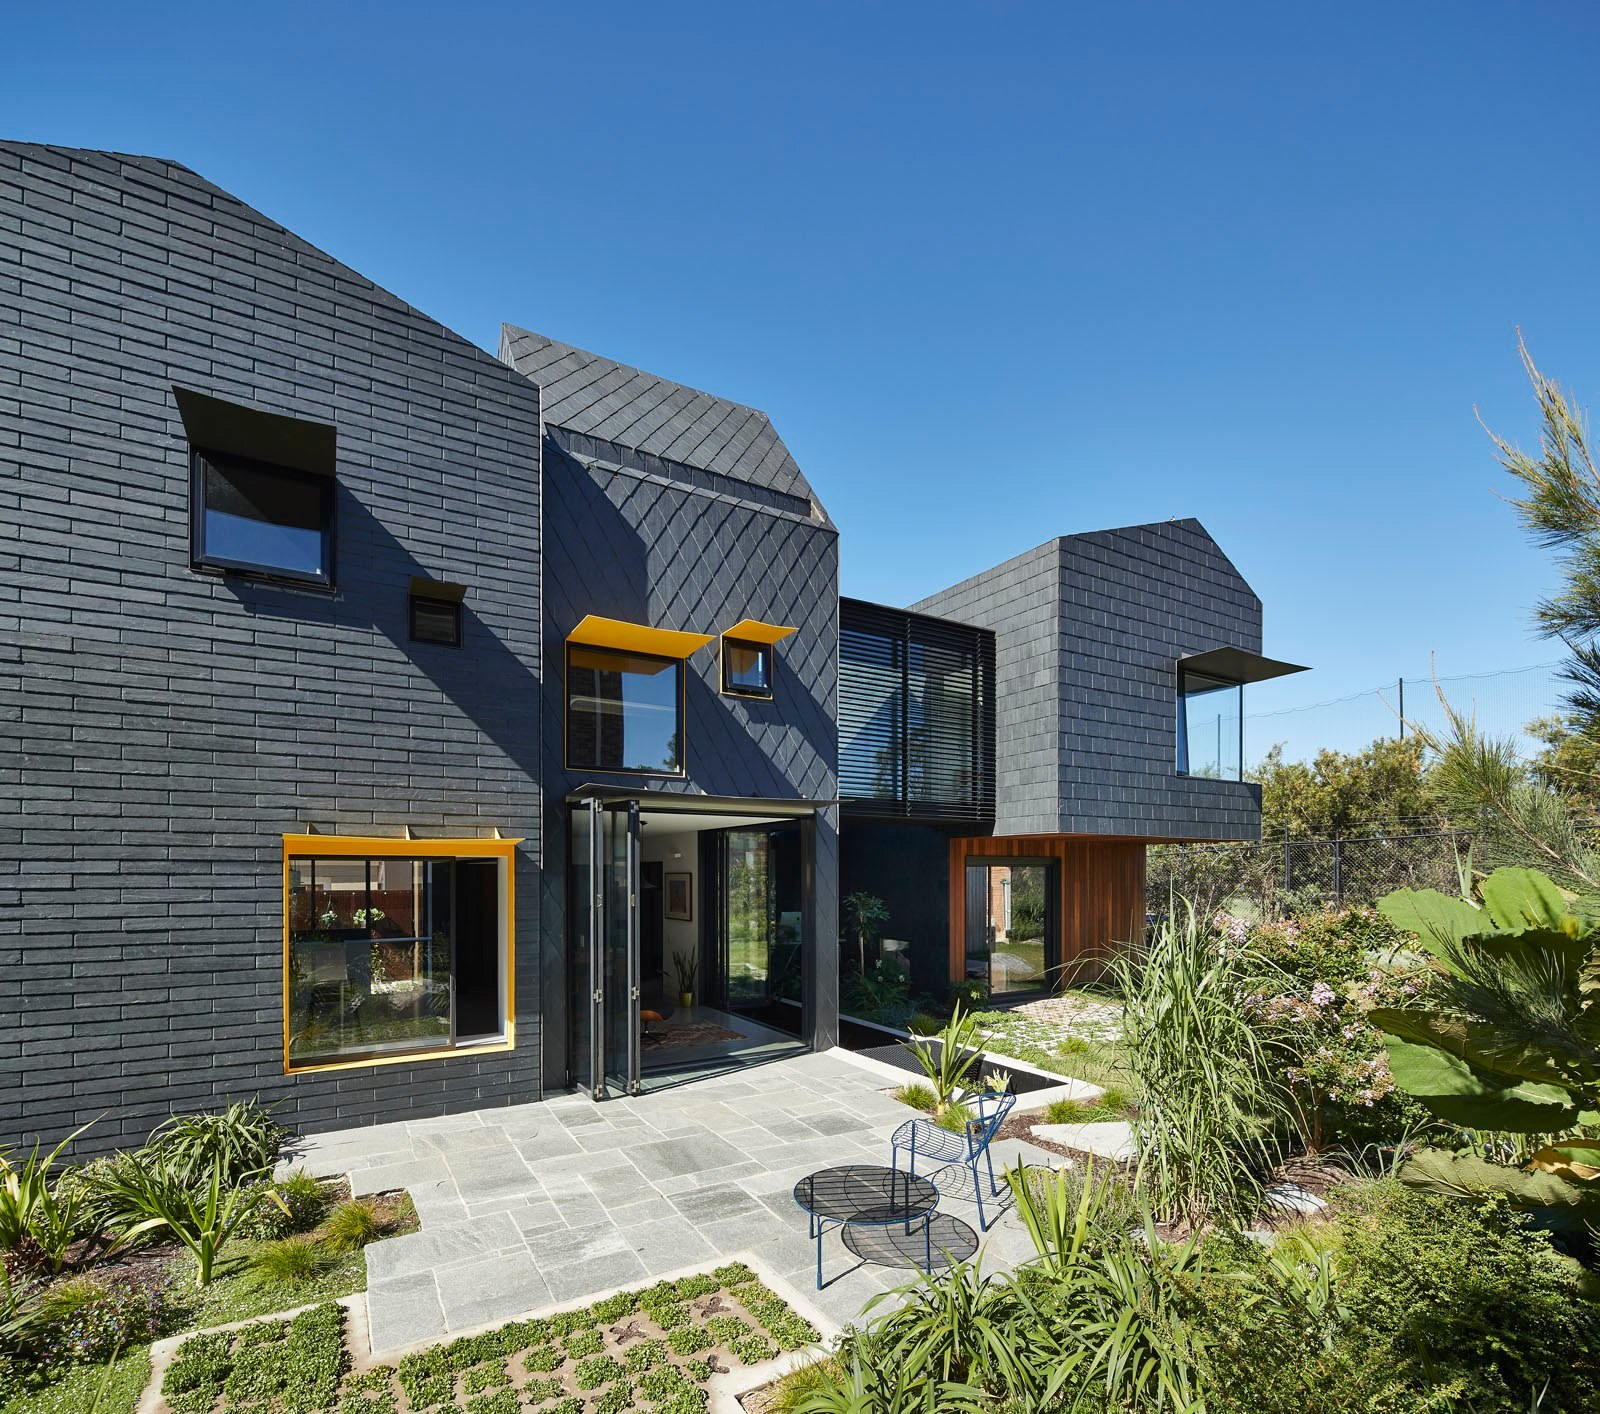 3_Charles House_Austin Maynard Architects_Inspirationist